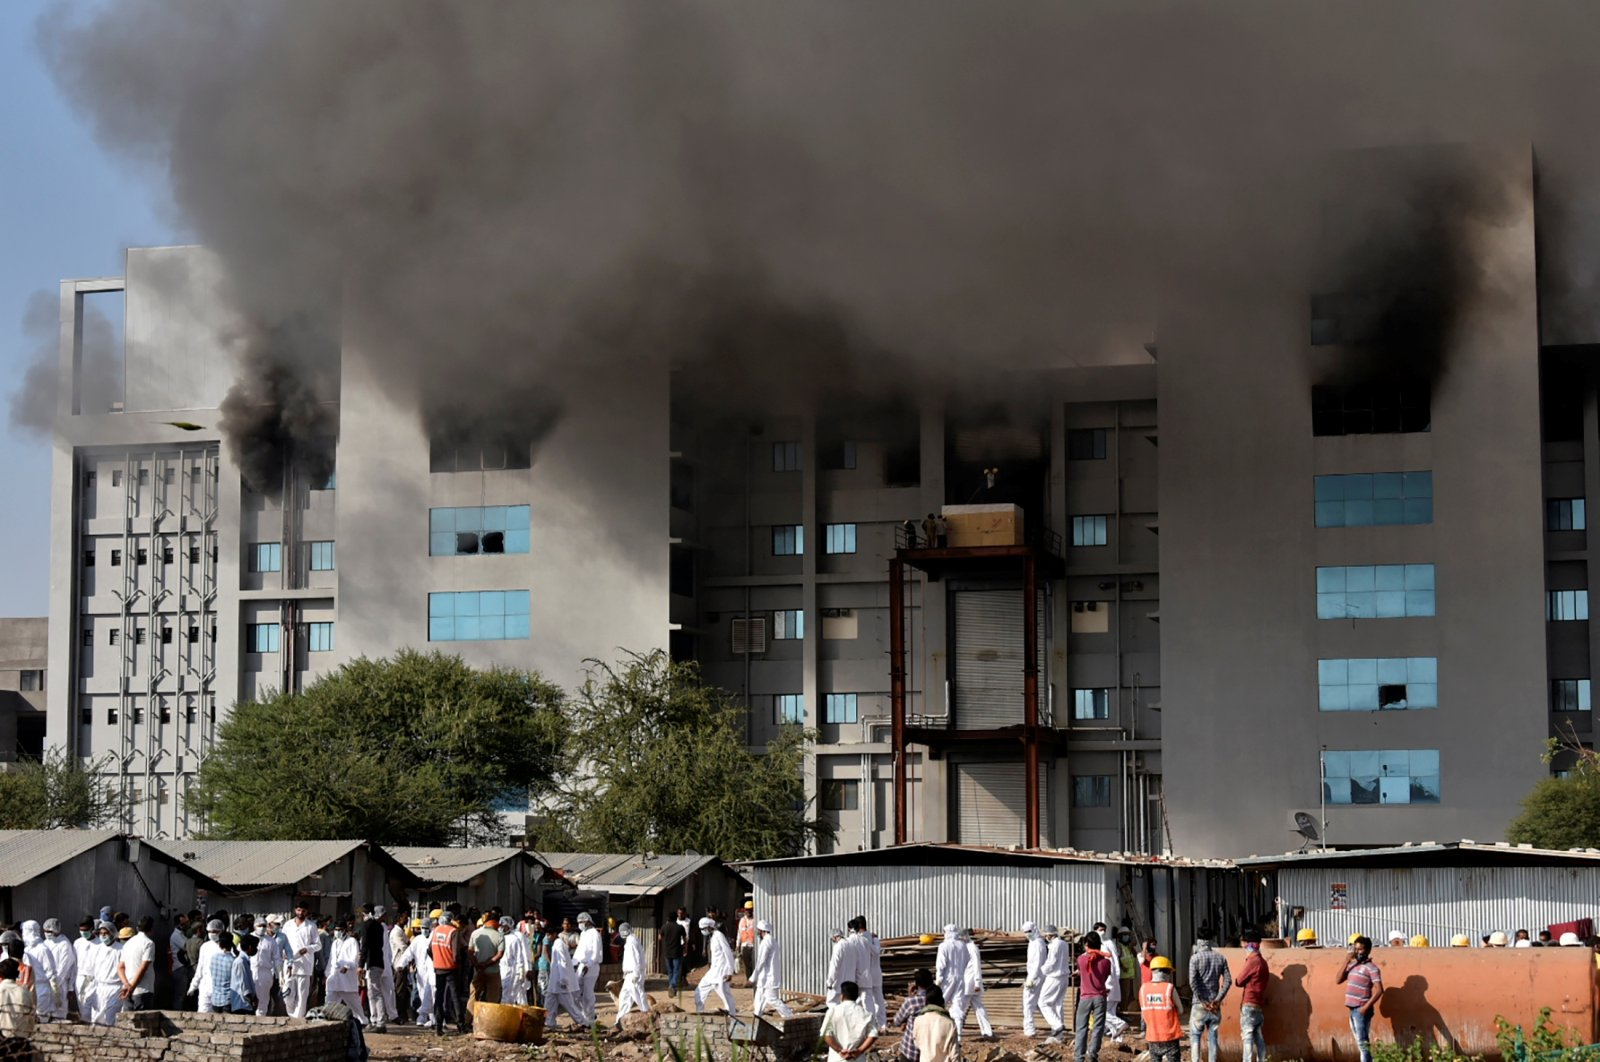 Smoke billows after a fire broke out inside the complex of the Serum Institute of India, in Pune, India, January 21, 2021. (Reuters Photo)